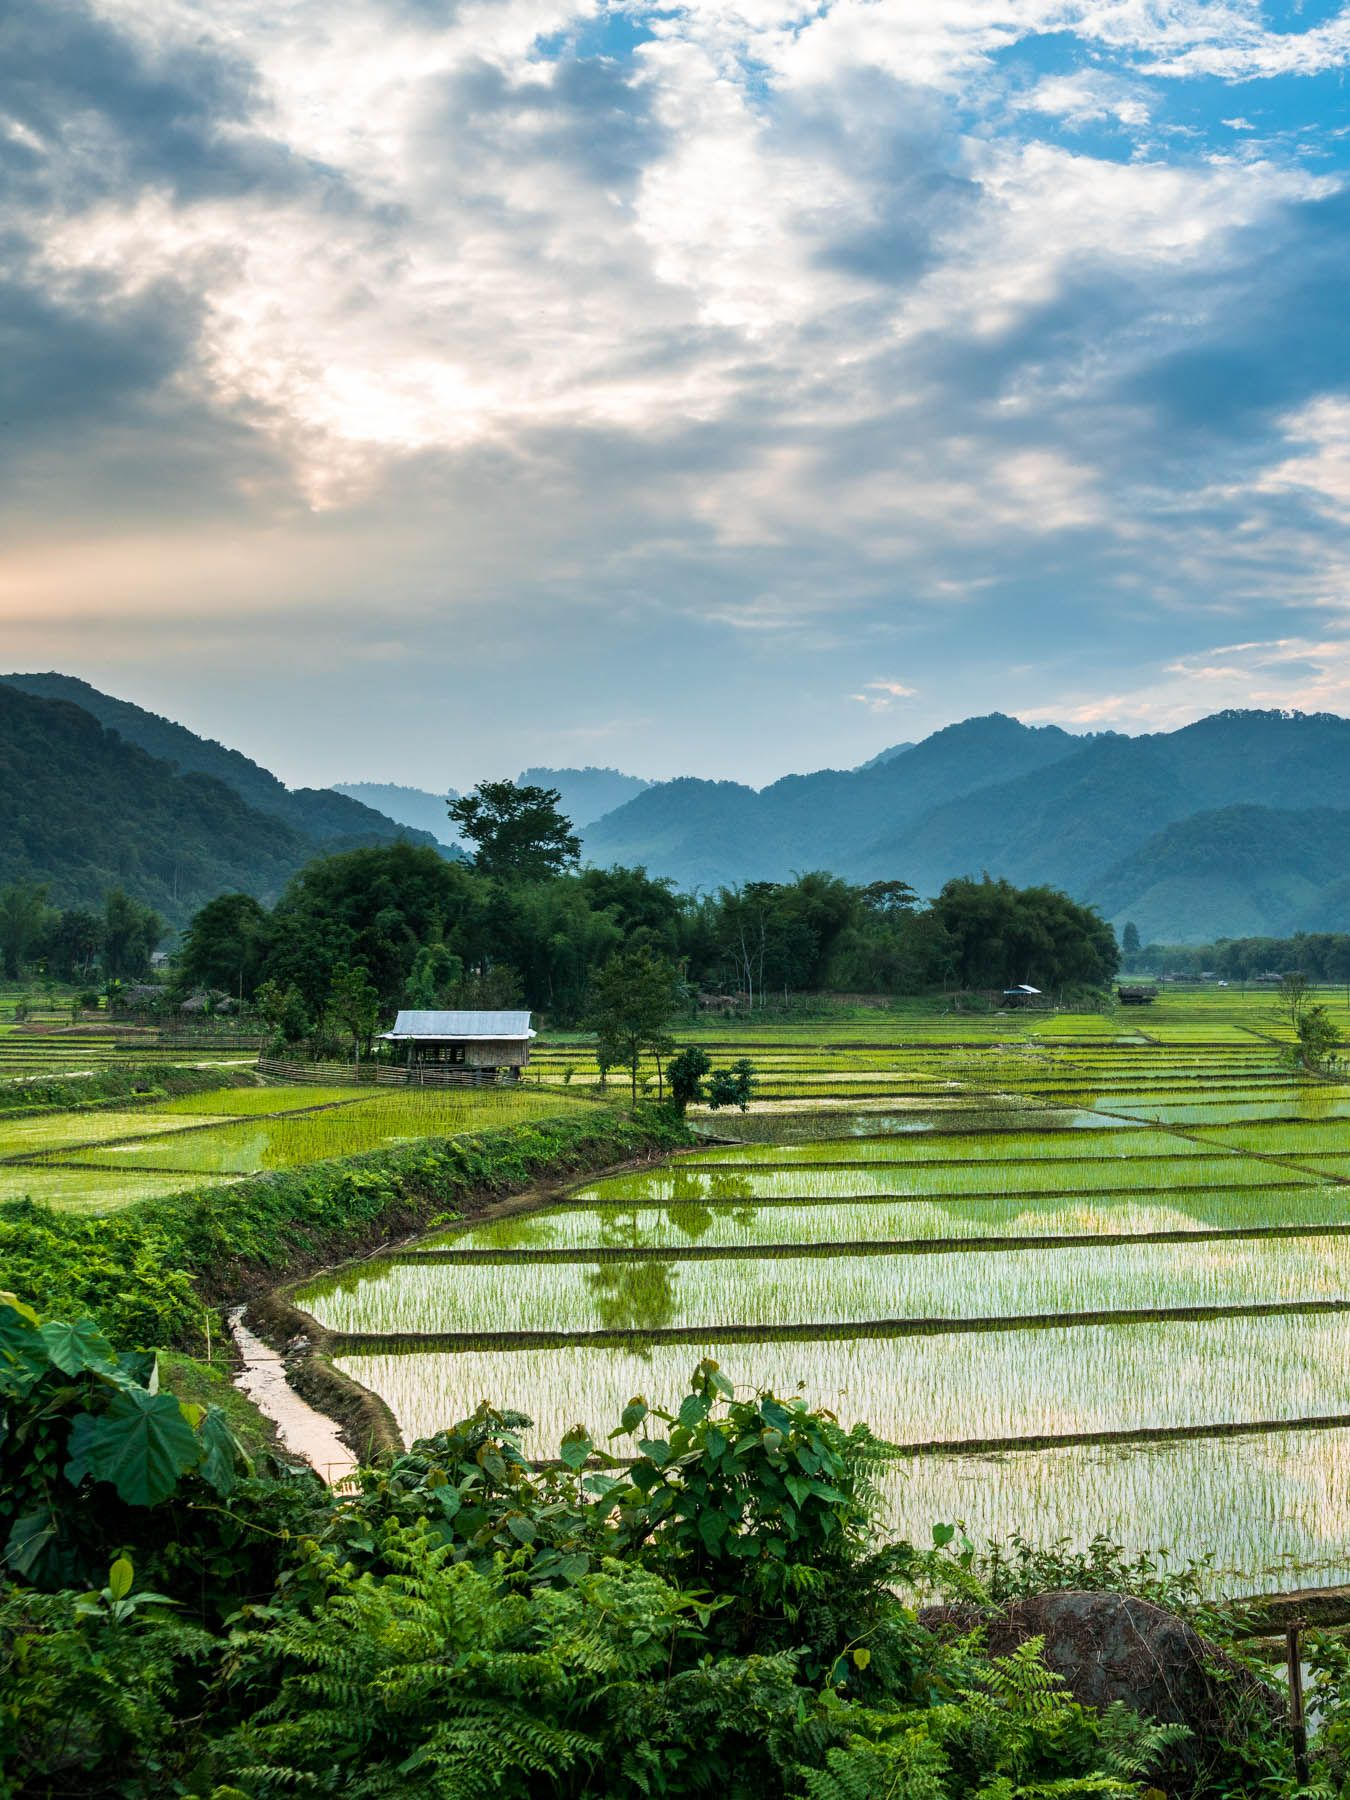 A reflective sunset over the rice paddies surrounding